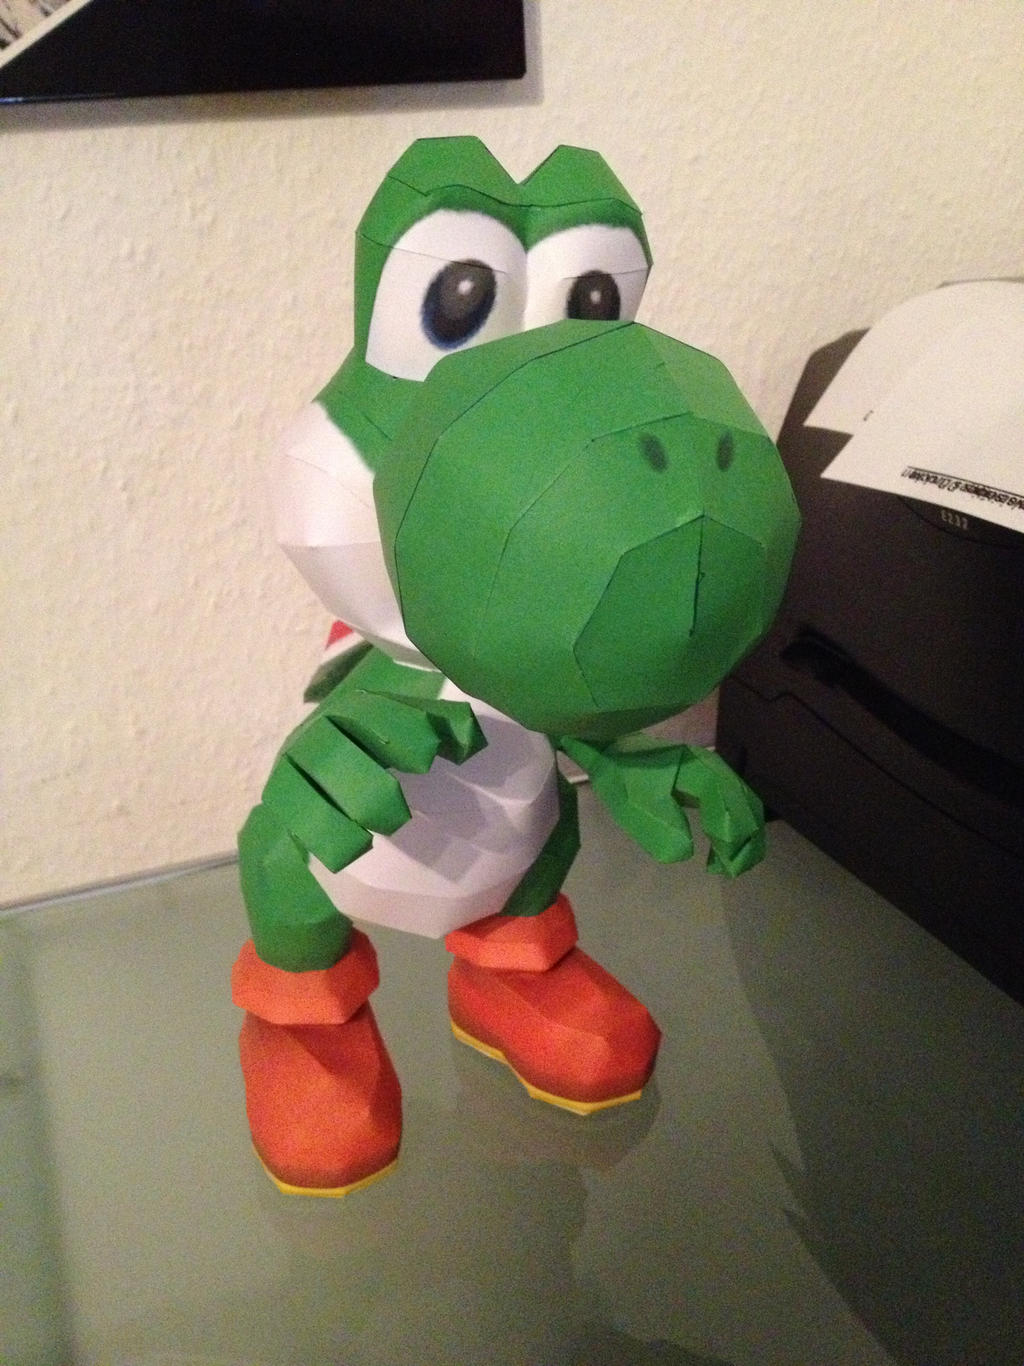 paper yoshi [this paper leak]( ) is making its rounds again,  because someone by the name of someh claimed it's real.